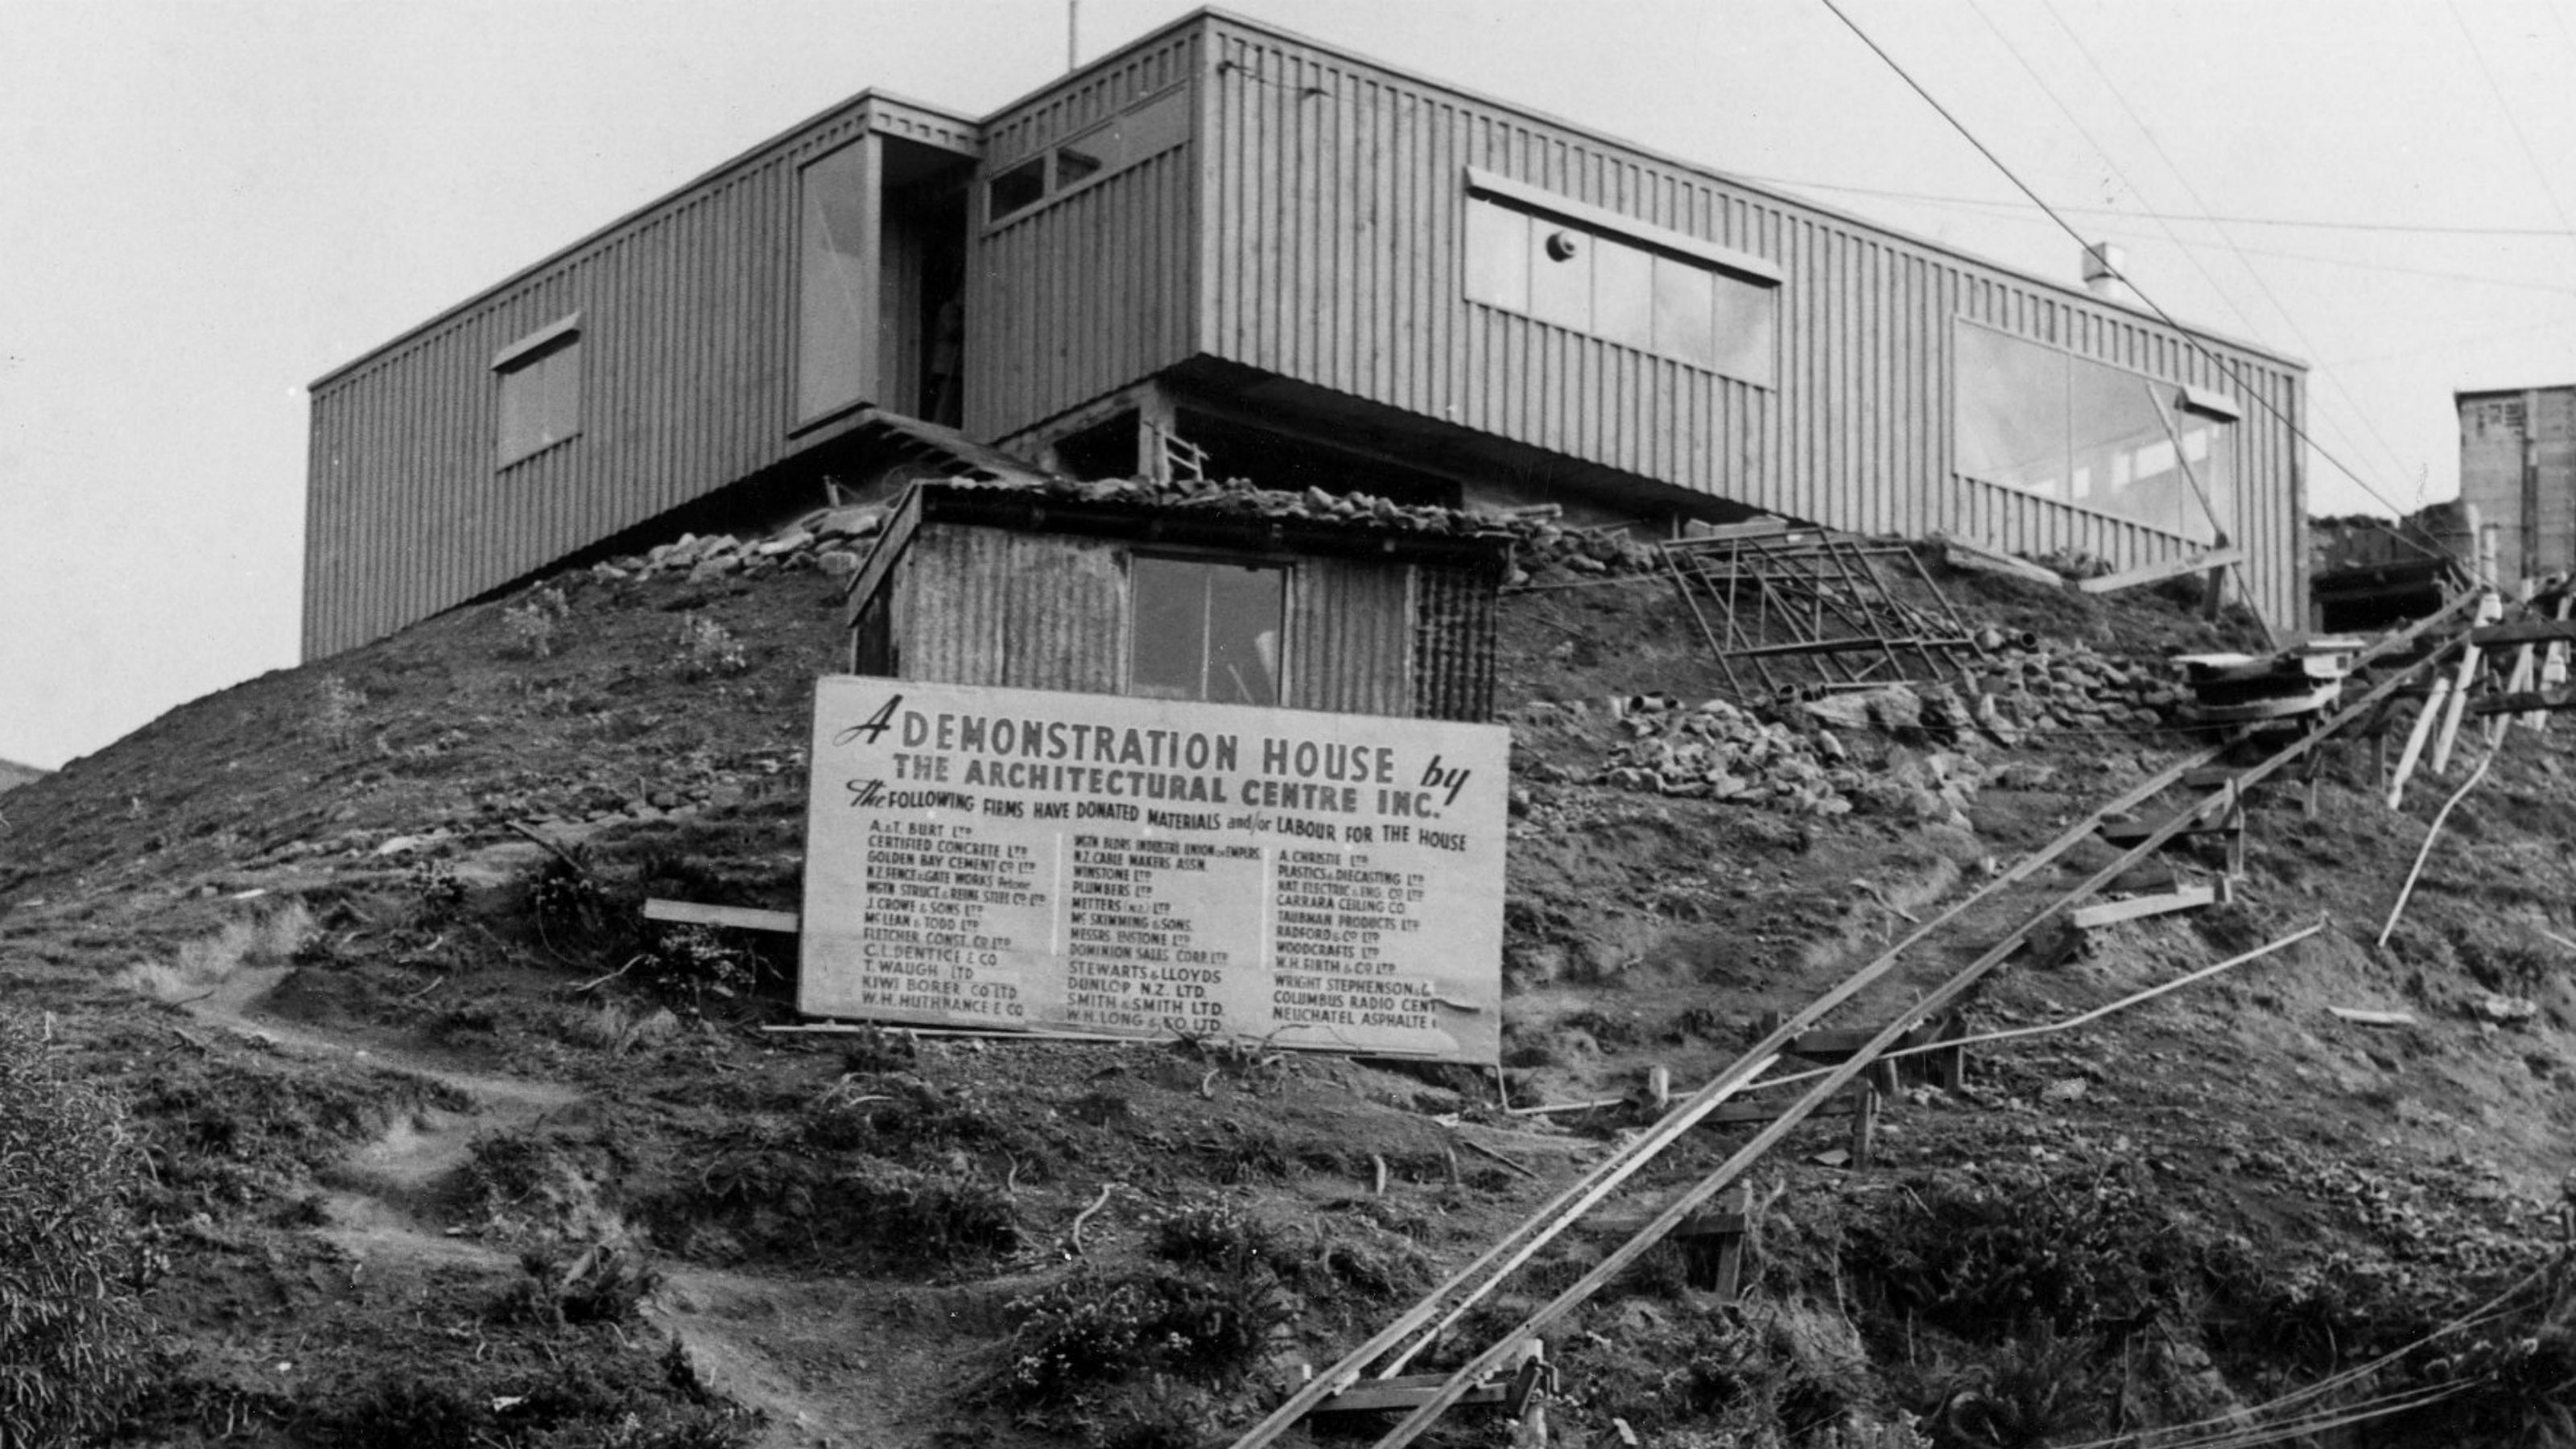 A demonstration house on a hill